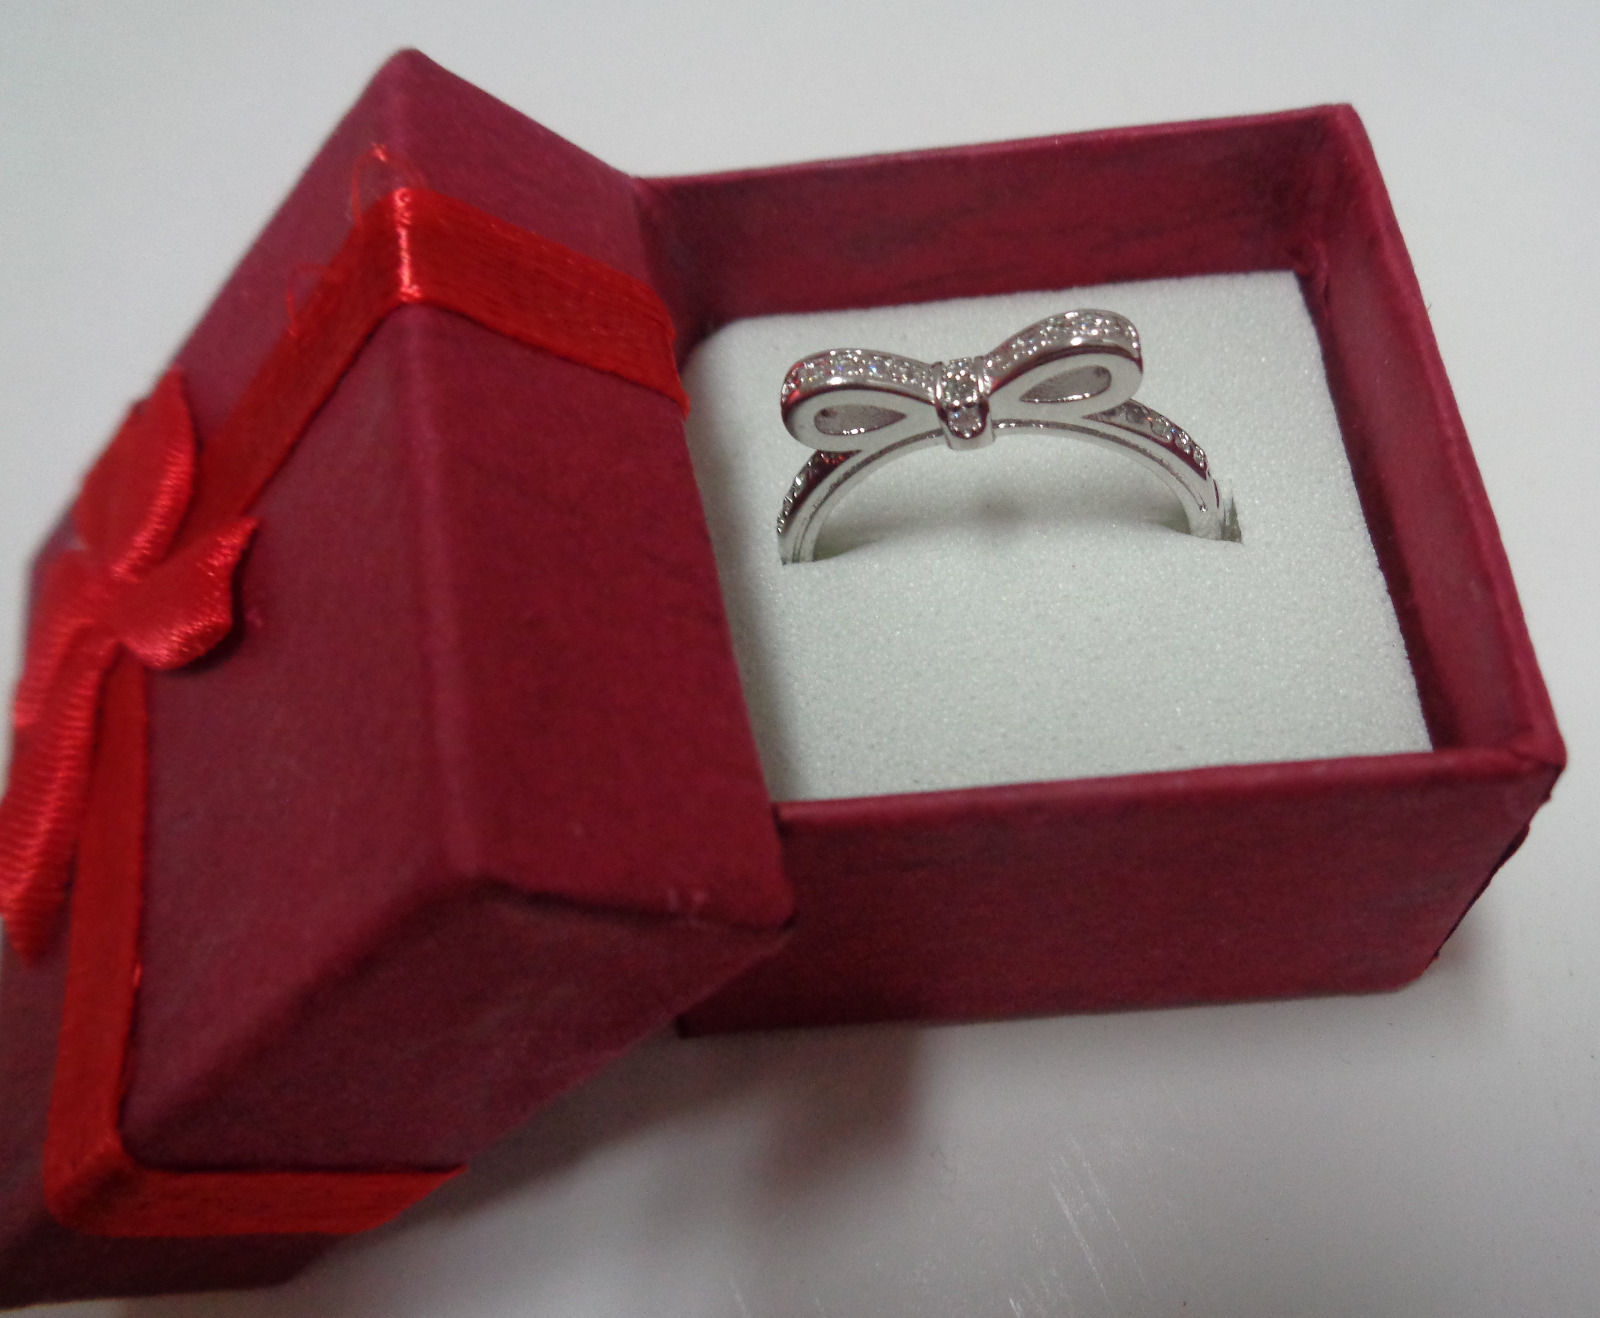 100% Sterling Silver 925 Sparkling Bow Ring Women's Size 6 NIB